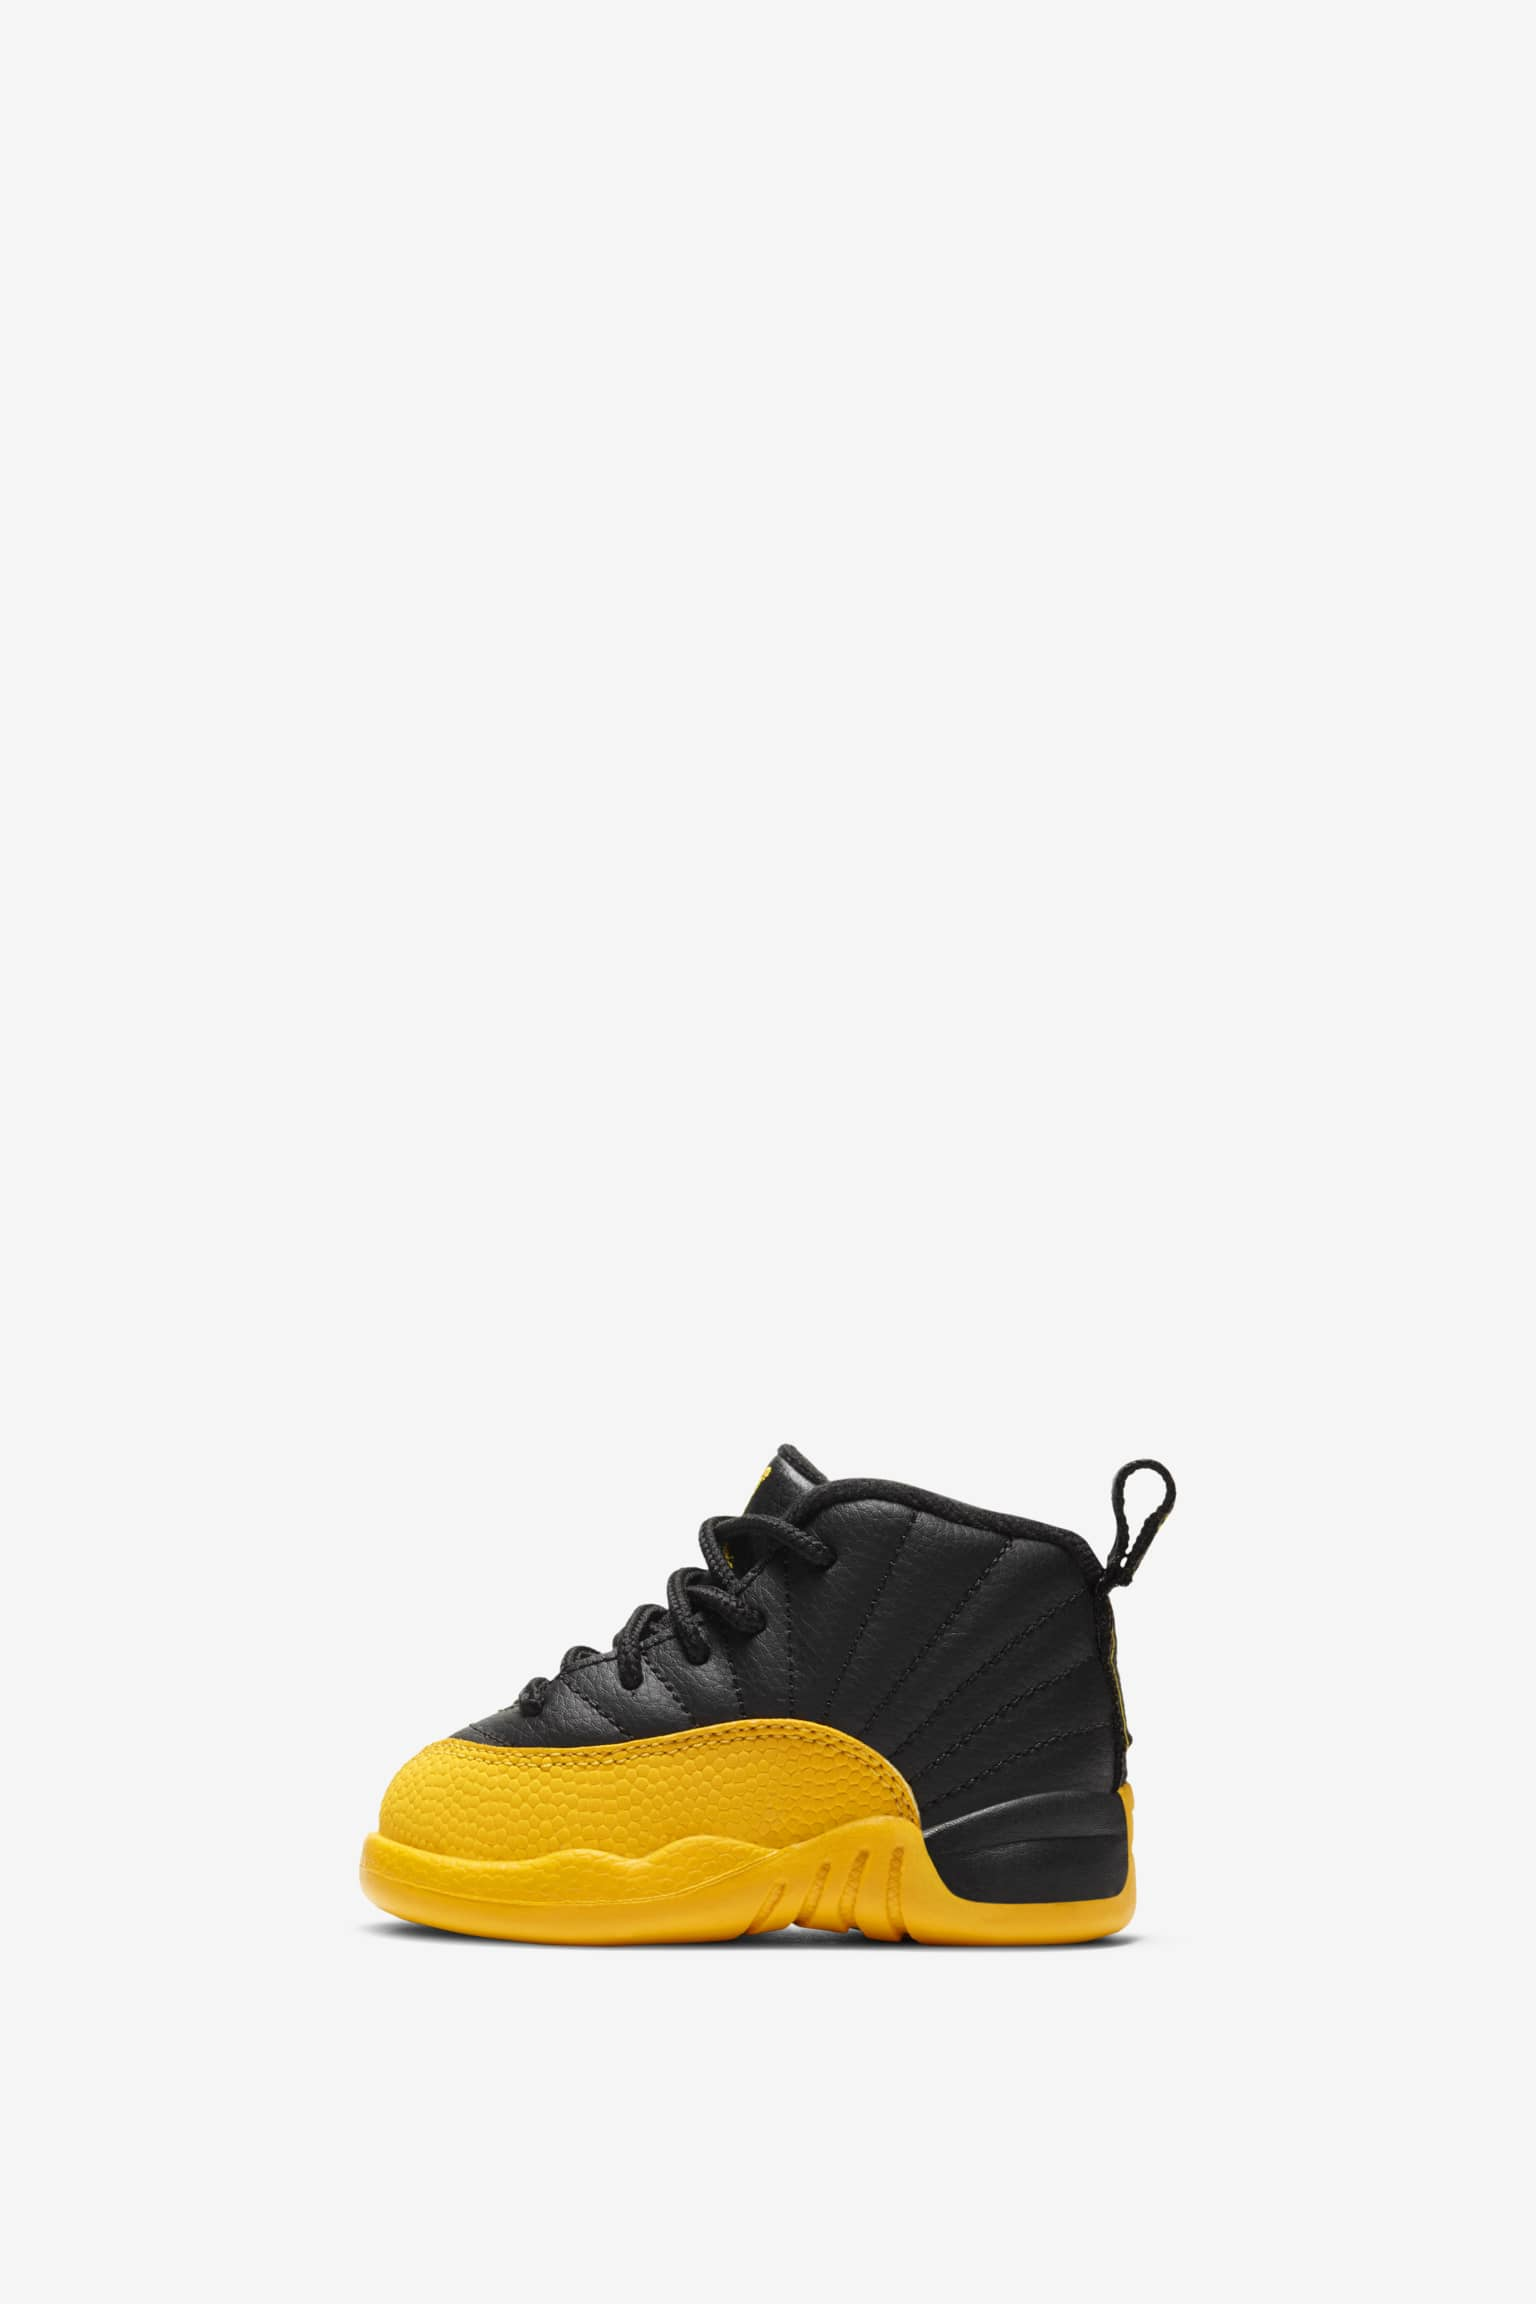 Air Jordan 12 University Gold Release Date Nike Snkrs